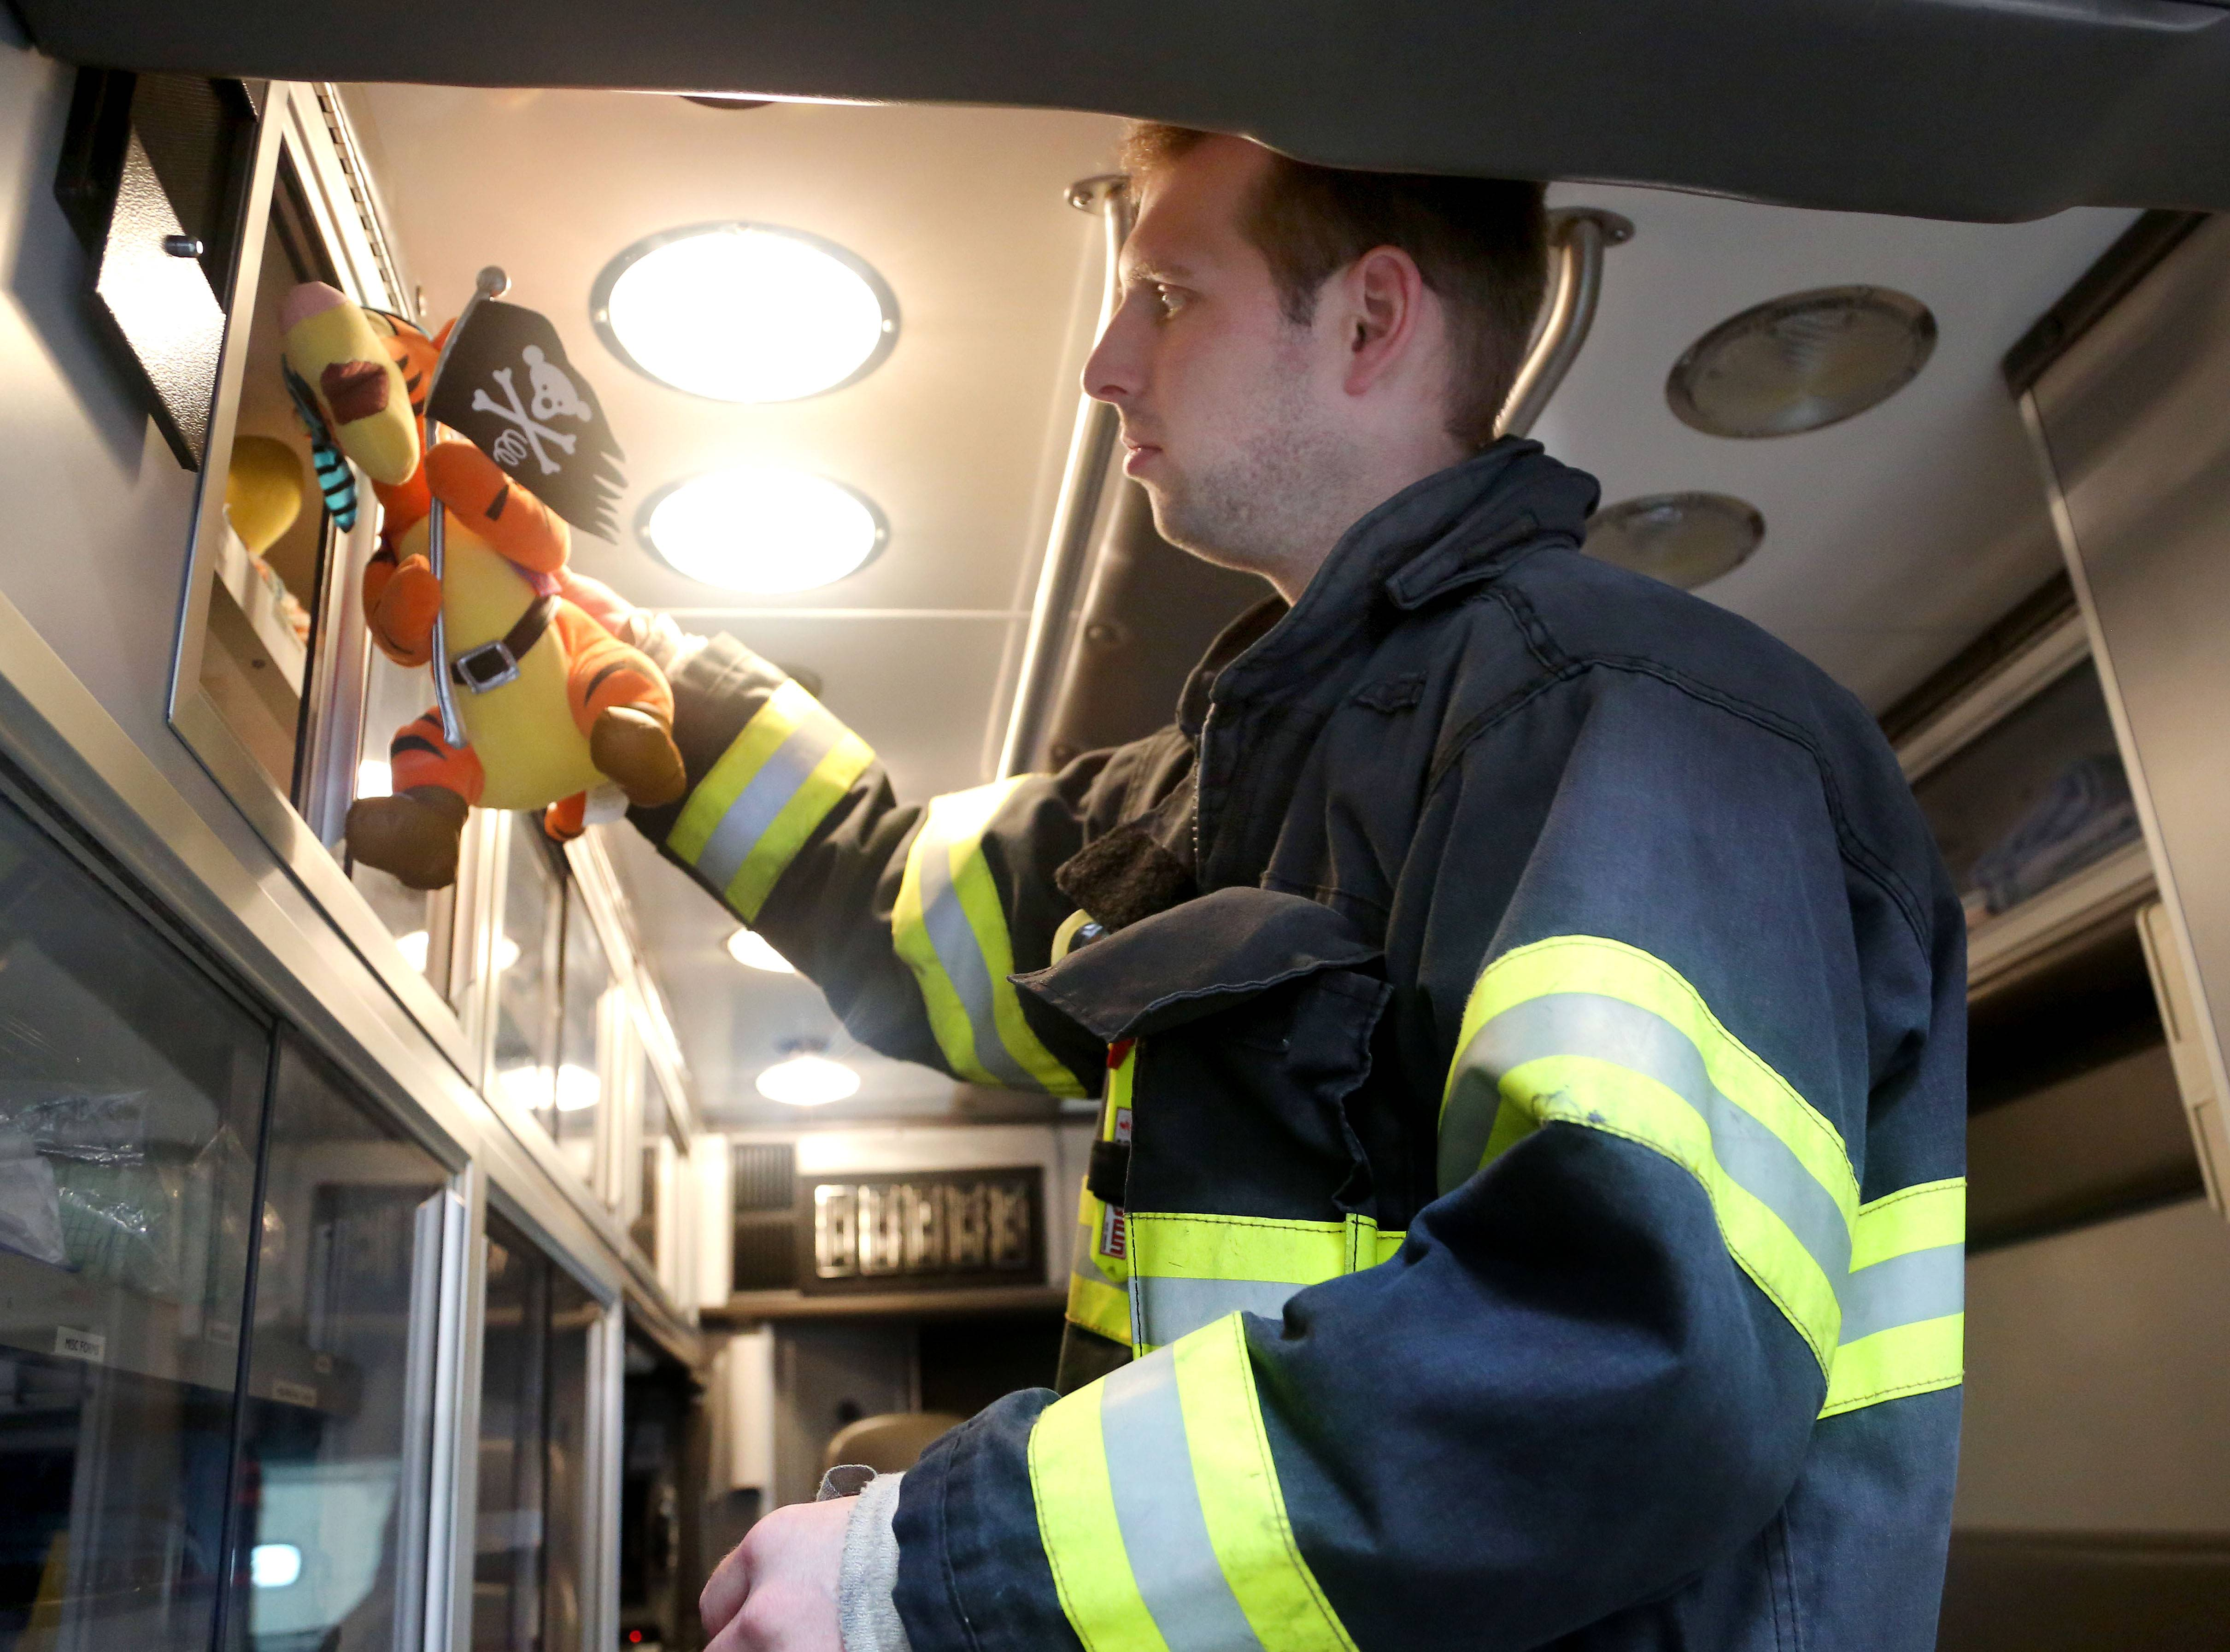 Libertyville firefighter Brian Bagdon loads stuffed animals into an ambulance. The animals were donated by Libertyville chiropractor Dr. Tom Bennett, who collected them from his patients. The animals are given to kids on emergency calls.